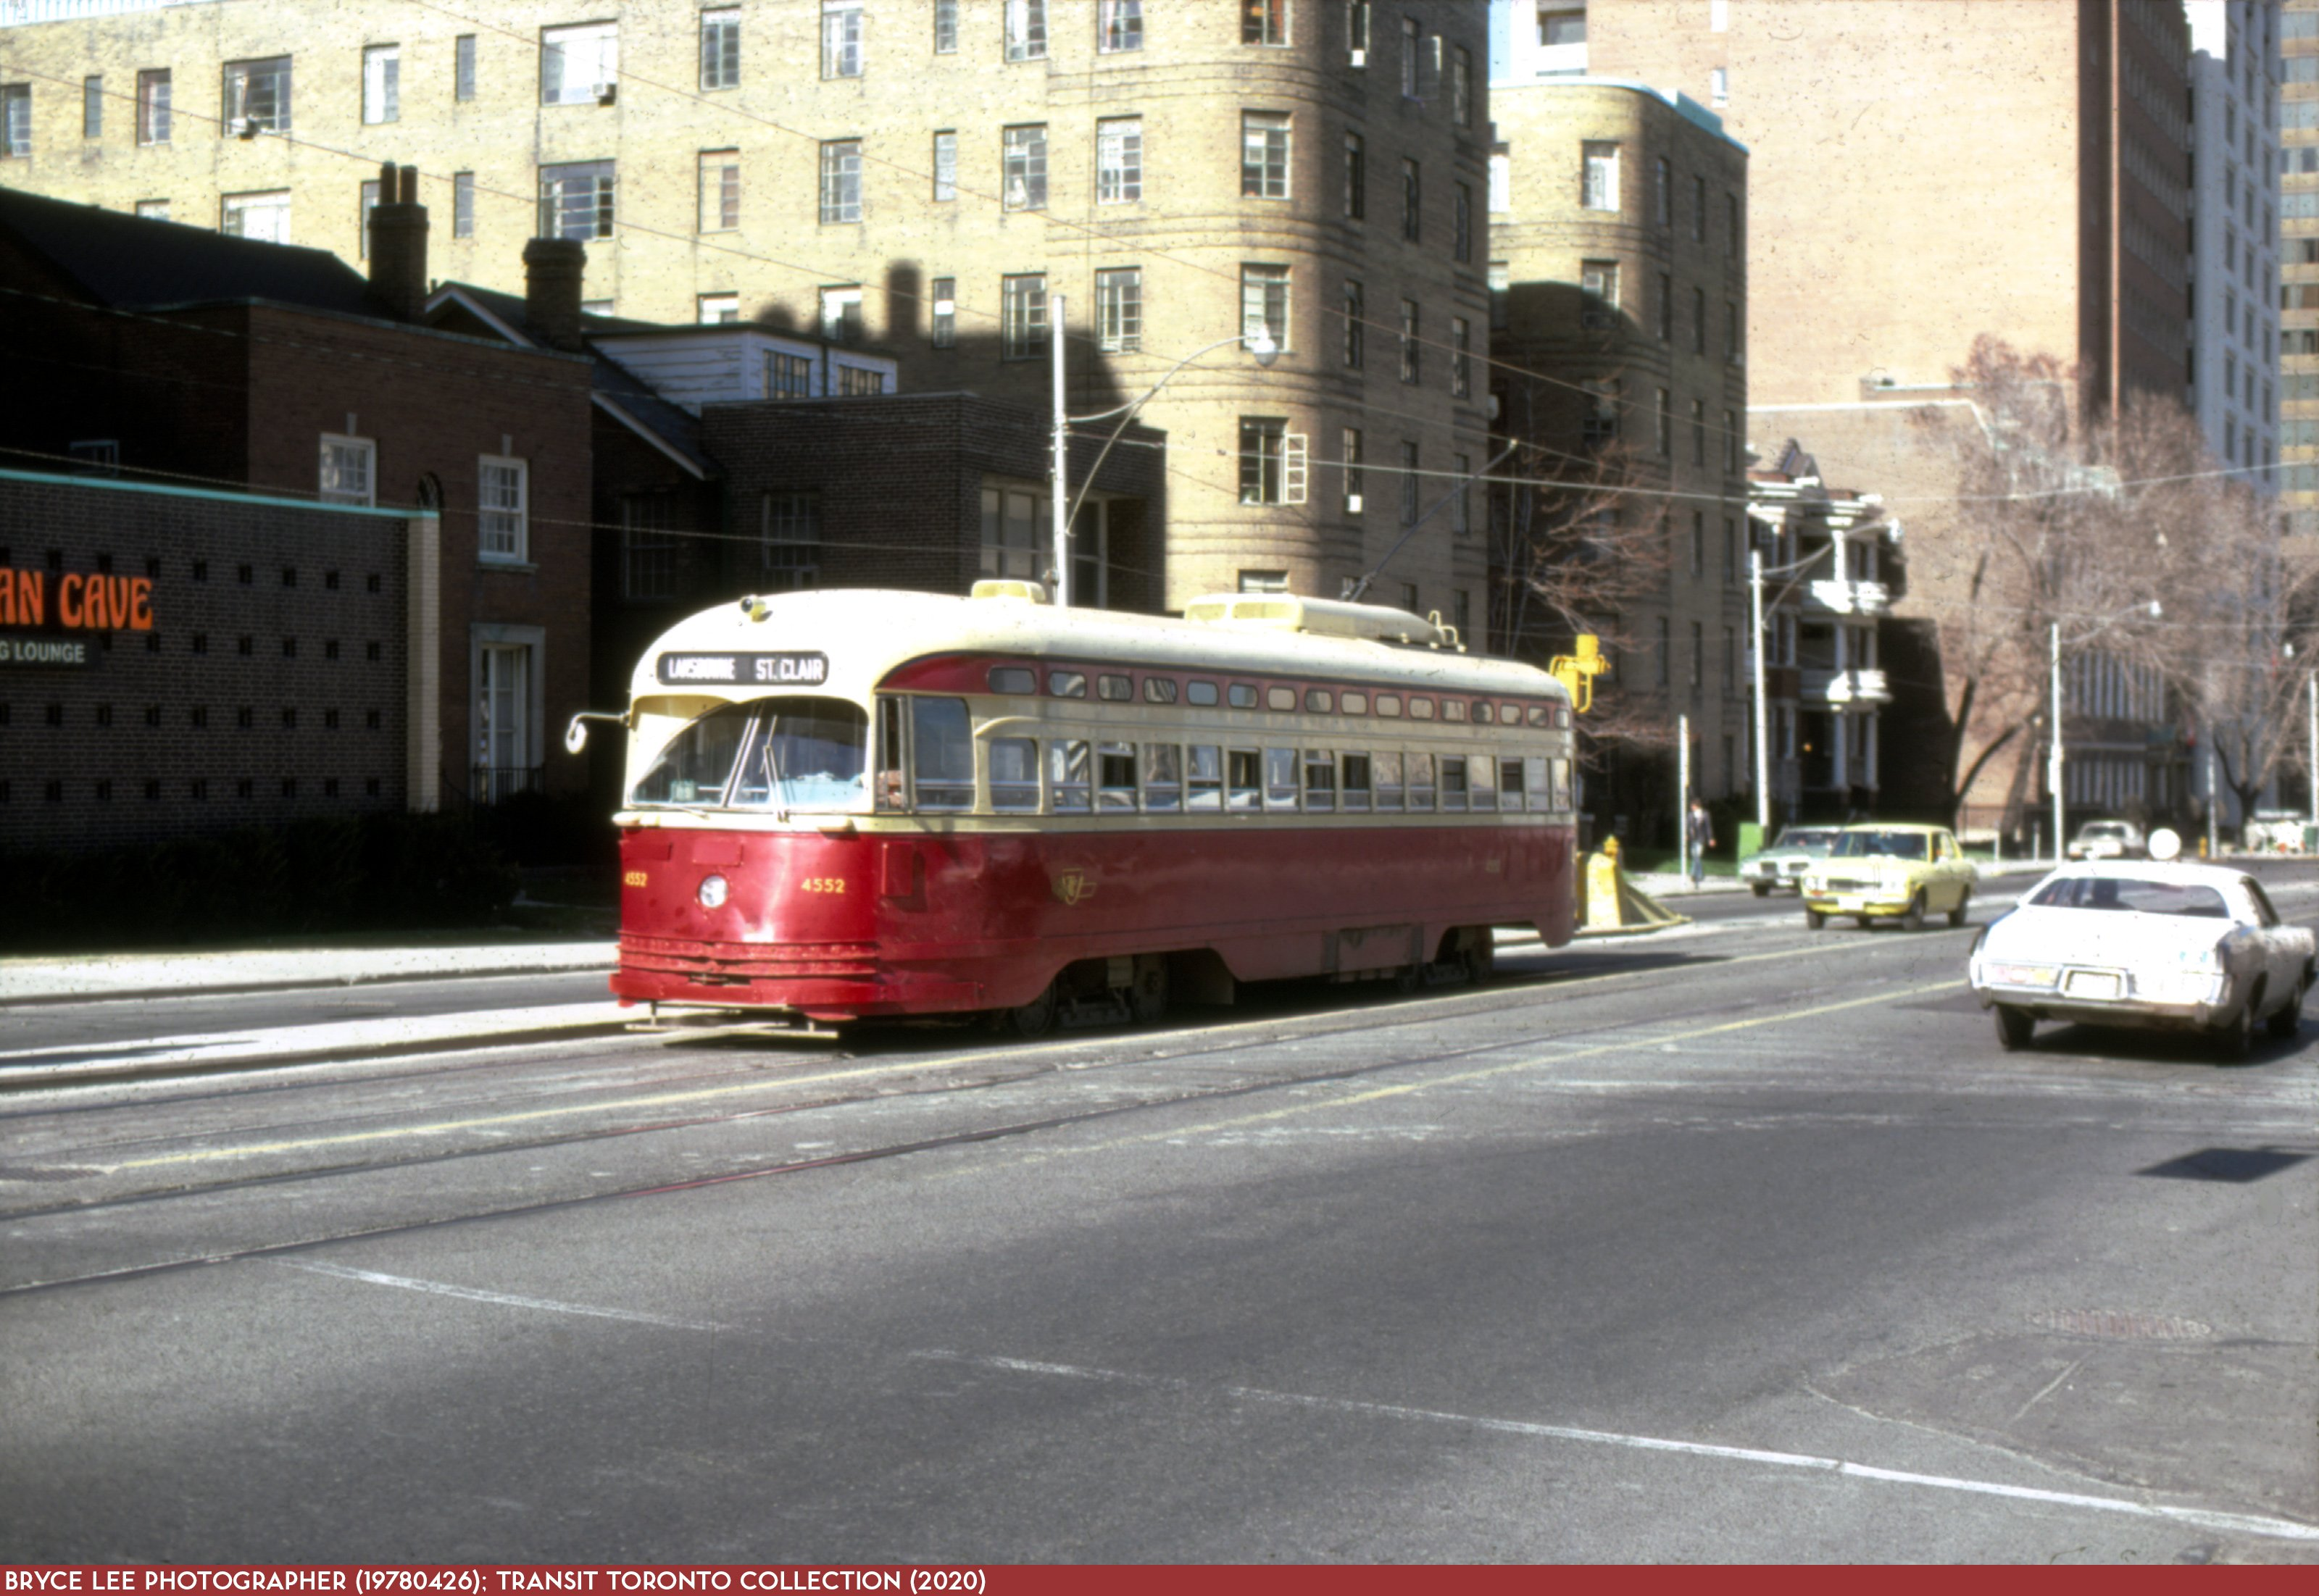 19780426 - 512 St. Clair - 4552 WB at Deer Park